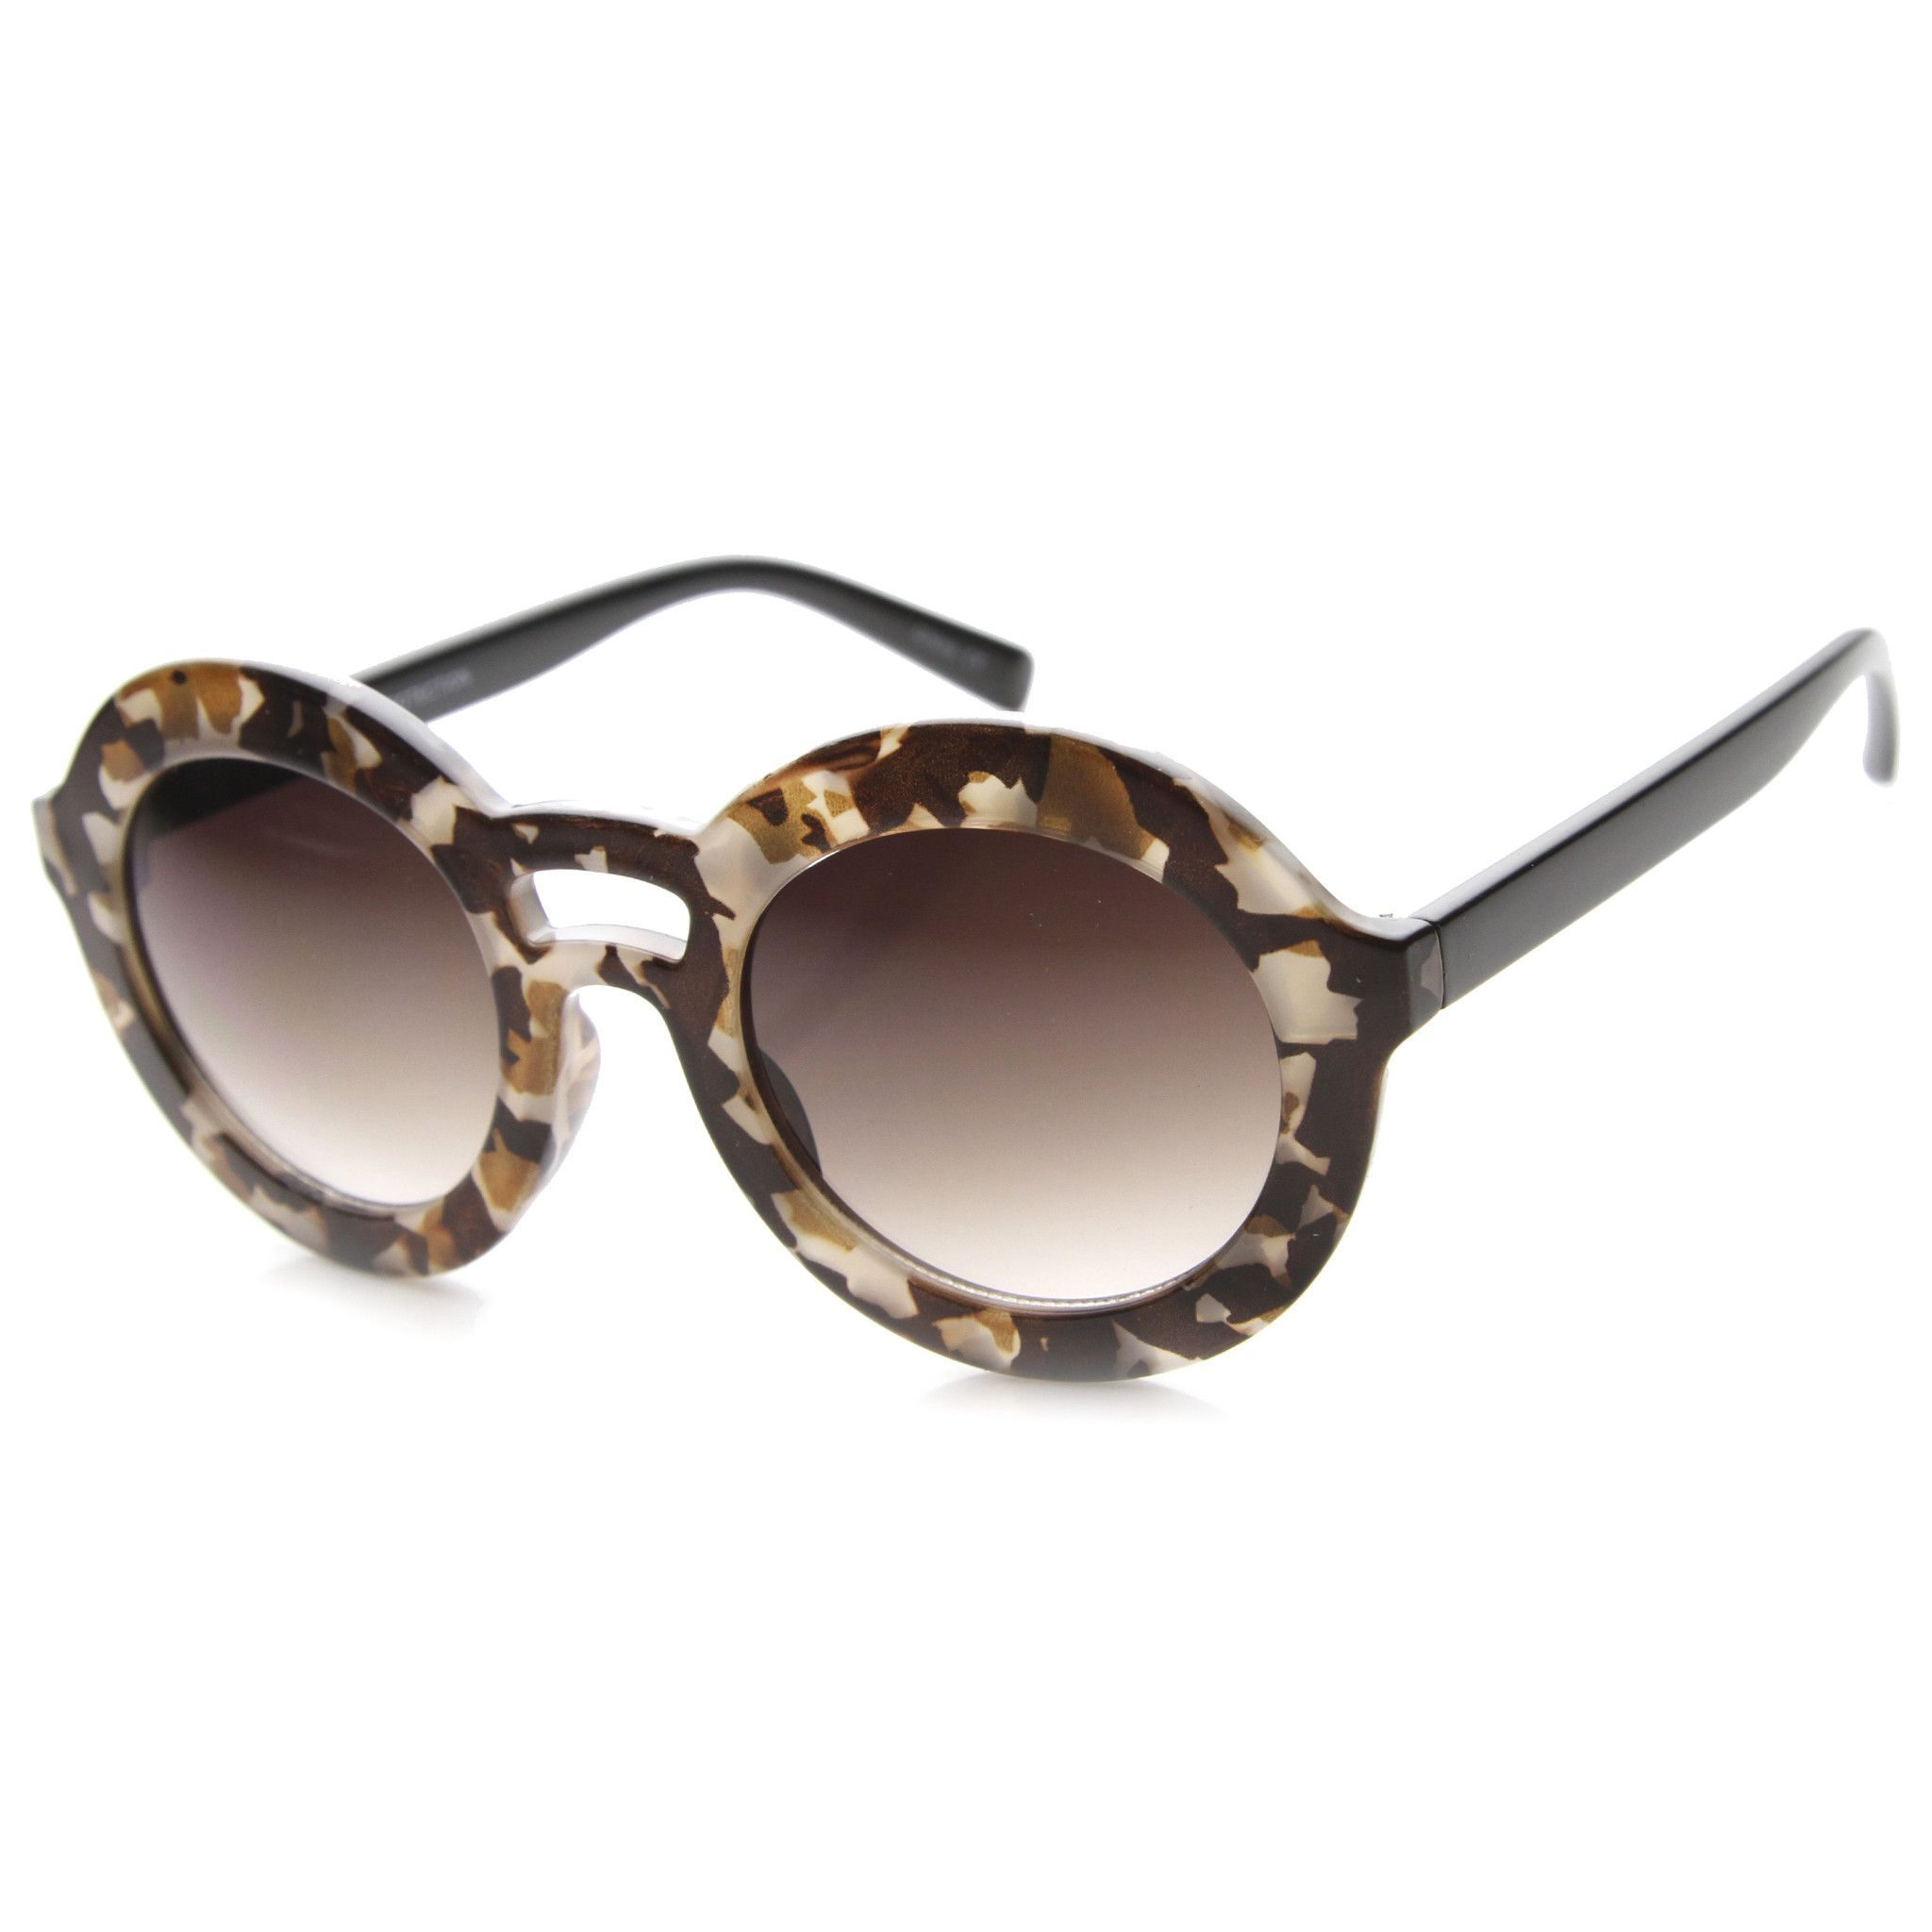 43ca7288460 Women s Fashion Round Bold Frame Sunglasses 9857